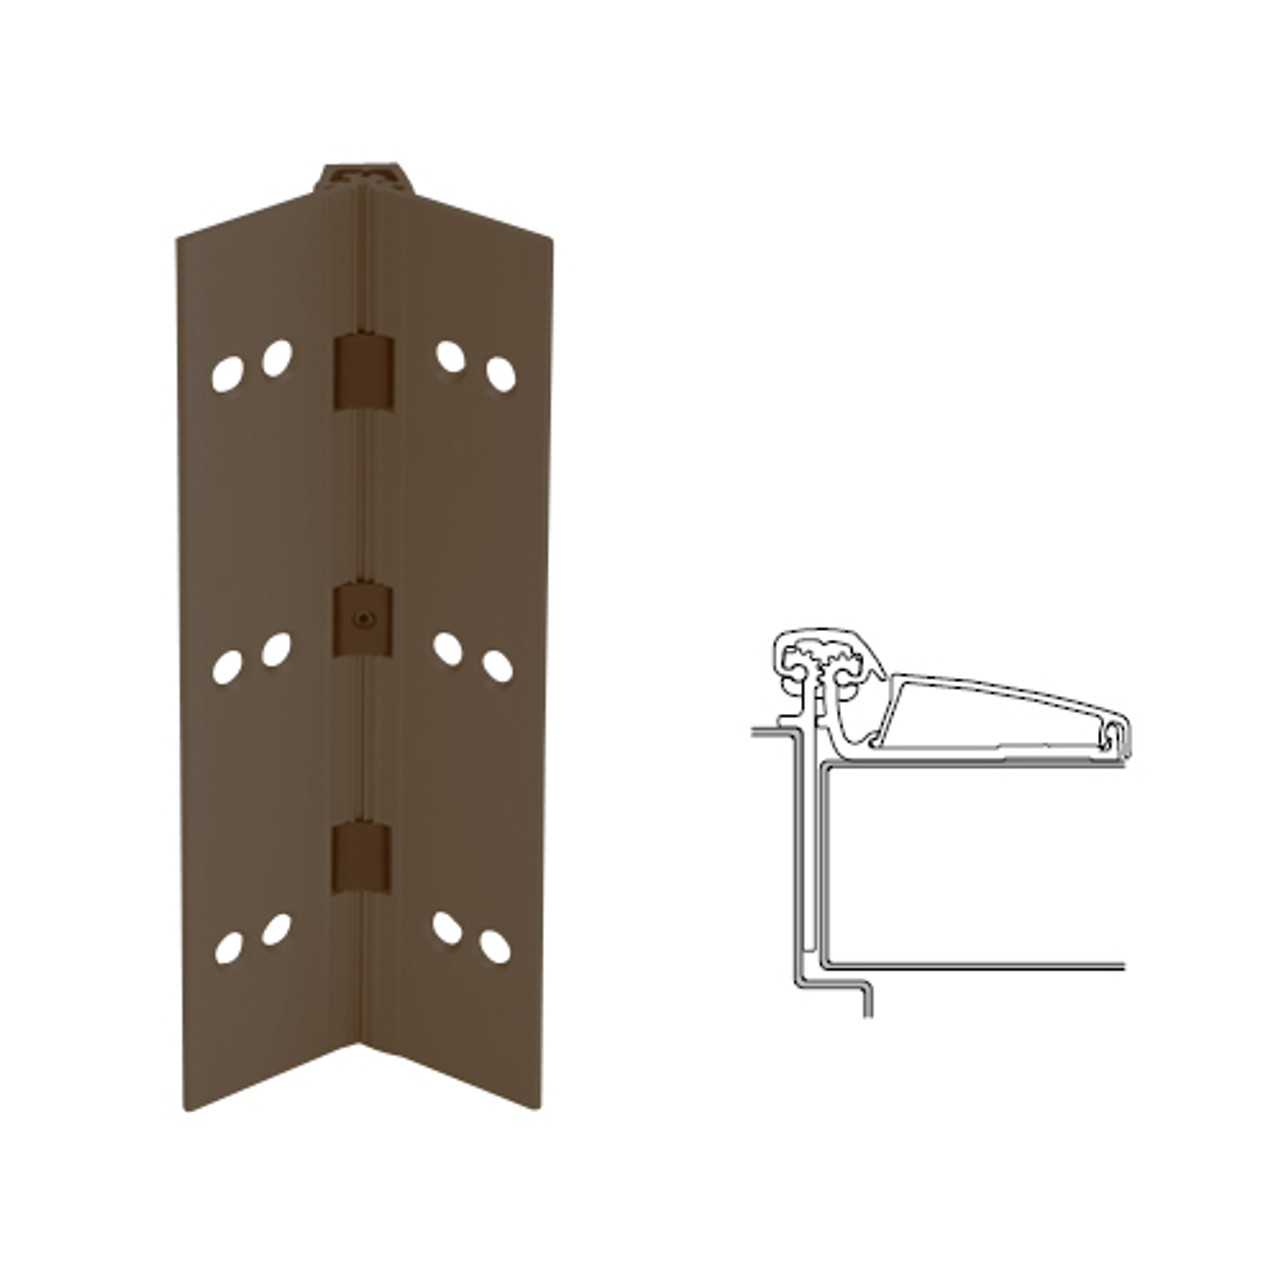 046XY-313AN-83-SECWDHM IVES Adjustable Half Surface Continuous Geared Hinges with Security Screws - Hex Pin Drive in Dark Bronze Anodized